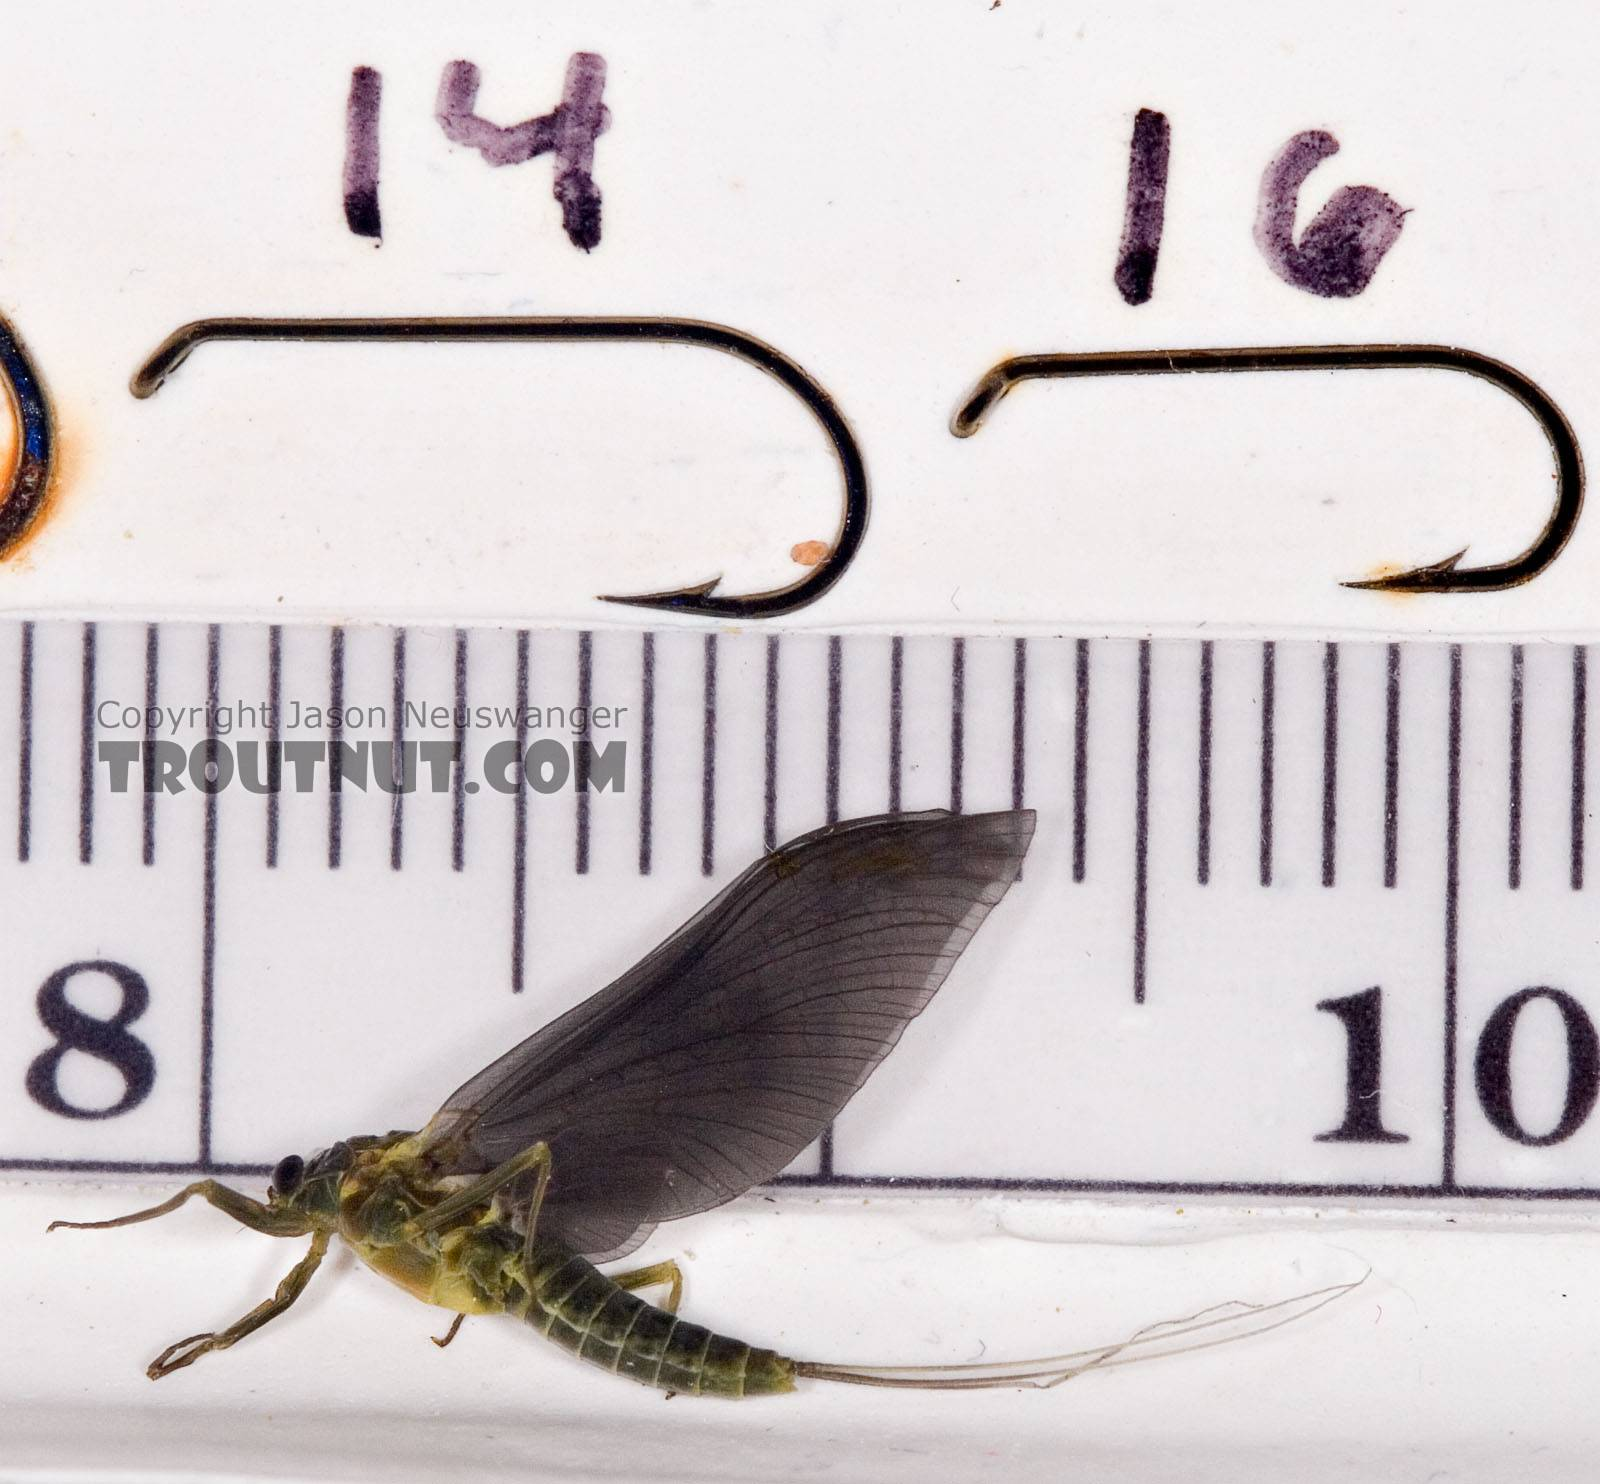 Female Drunella cornuta (Large Blue-Winged Olive) Mayfly Dun from Brodhead Creek in Pennsylvania